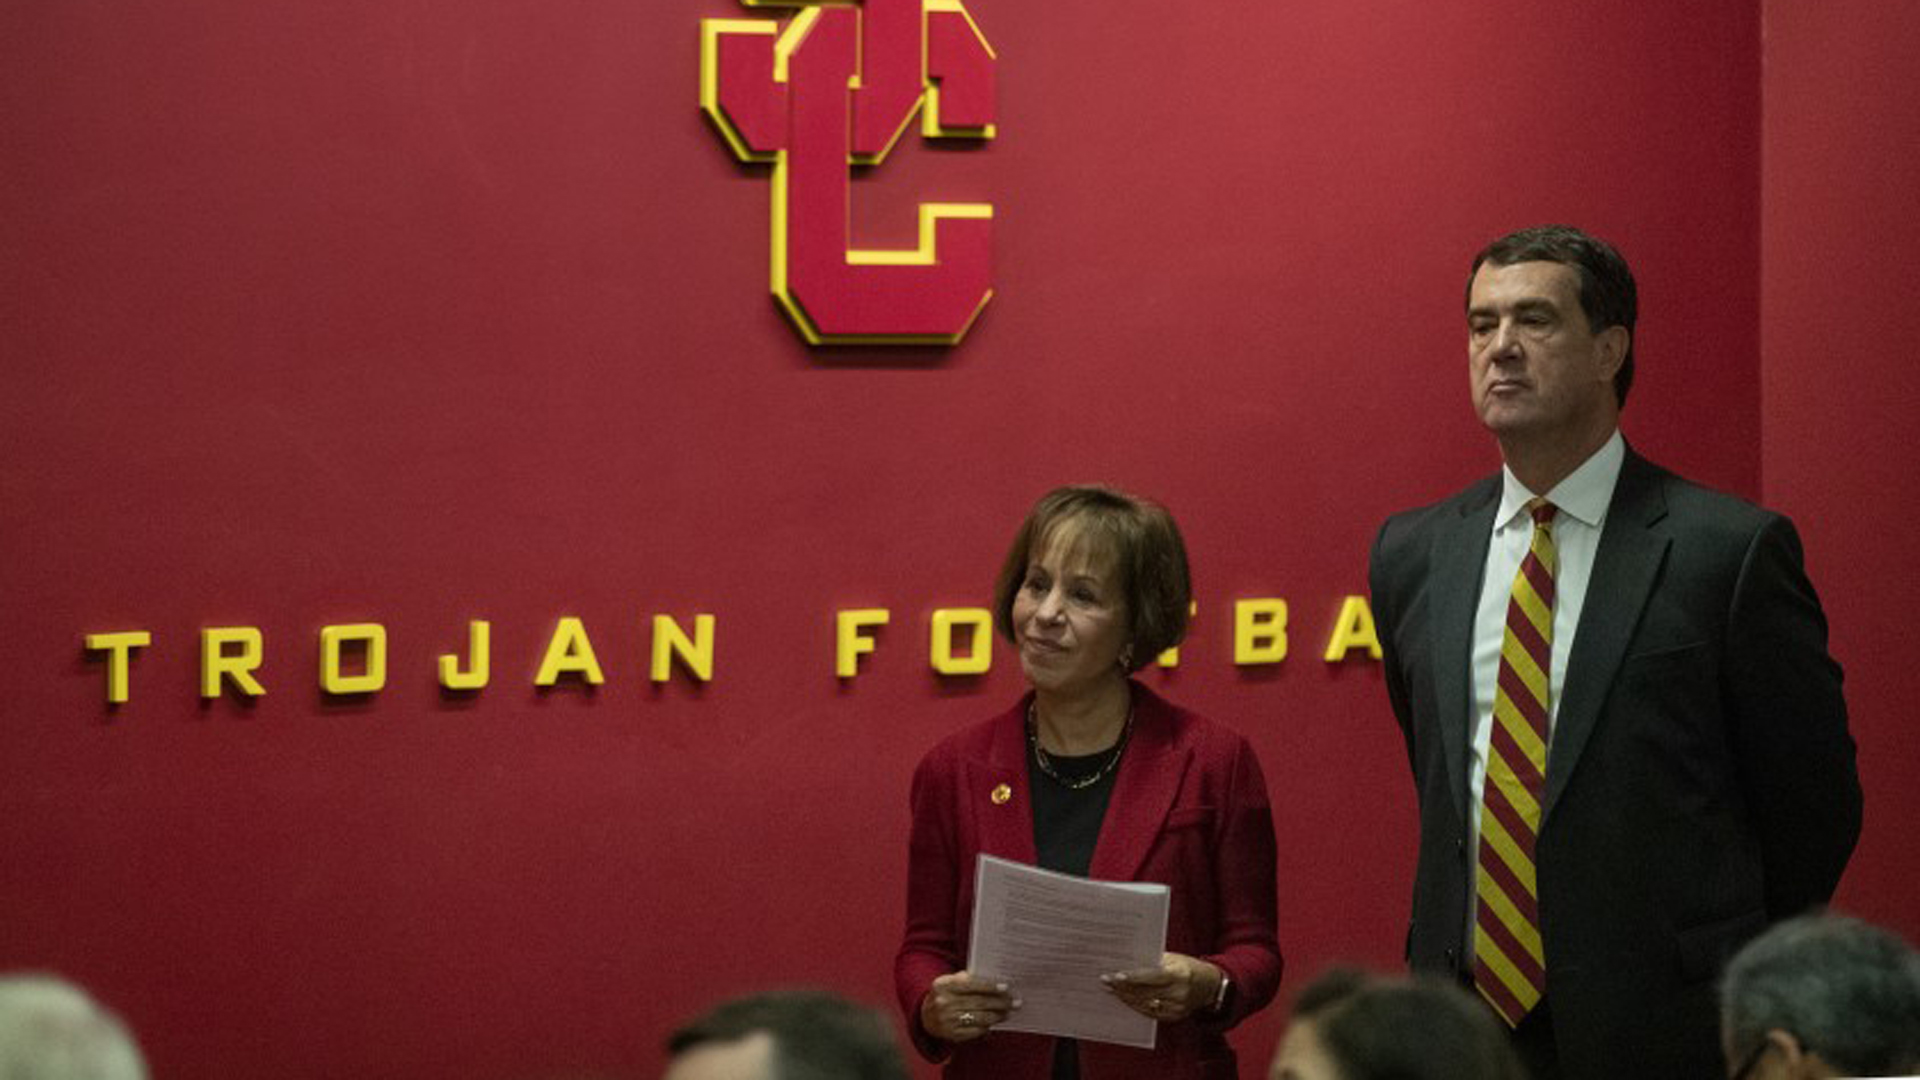 USC President Carol L. Folt waits with new USC athletic director Mike Bohn during news conference on Nov. 7, 2019.(Credit: Brian van der Brug / Los Angeles Times)